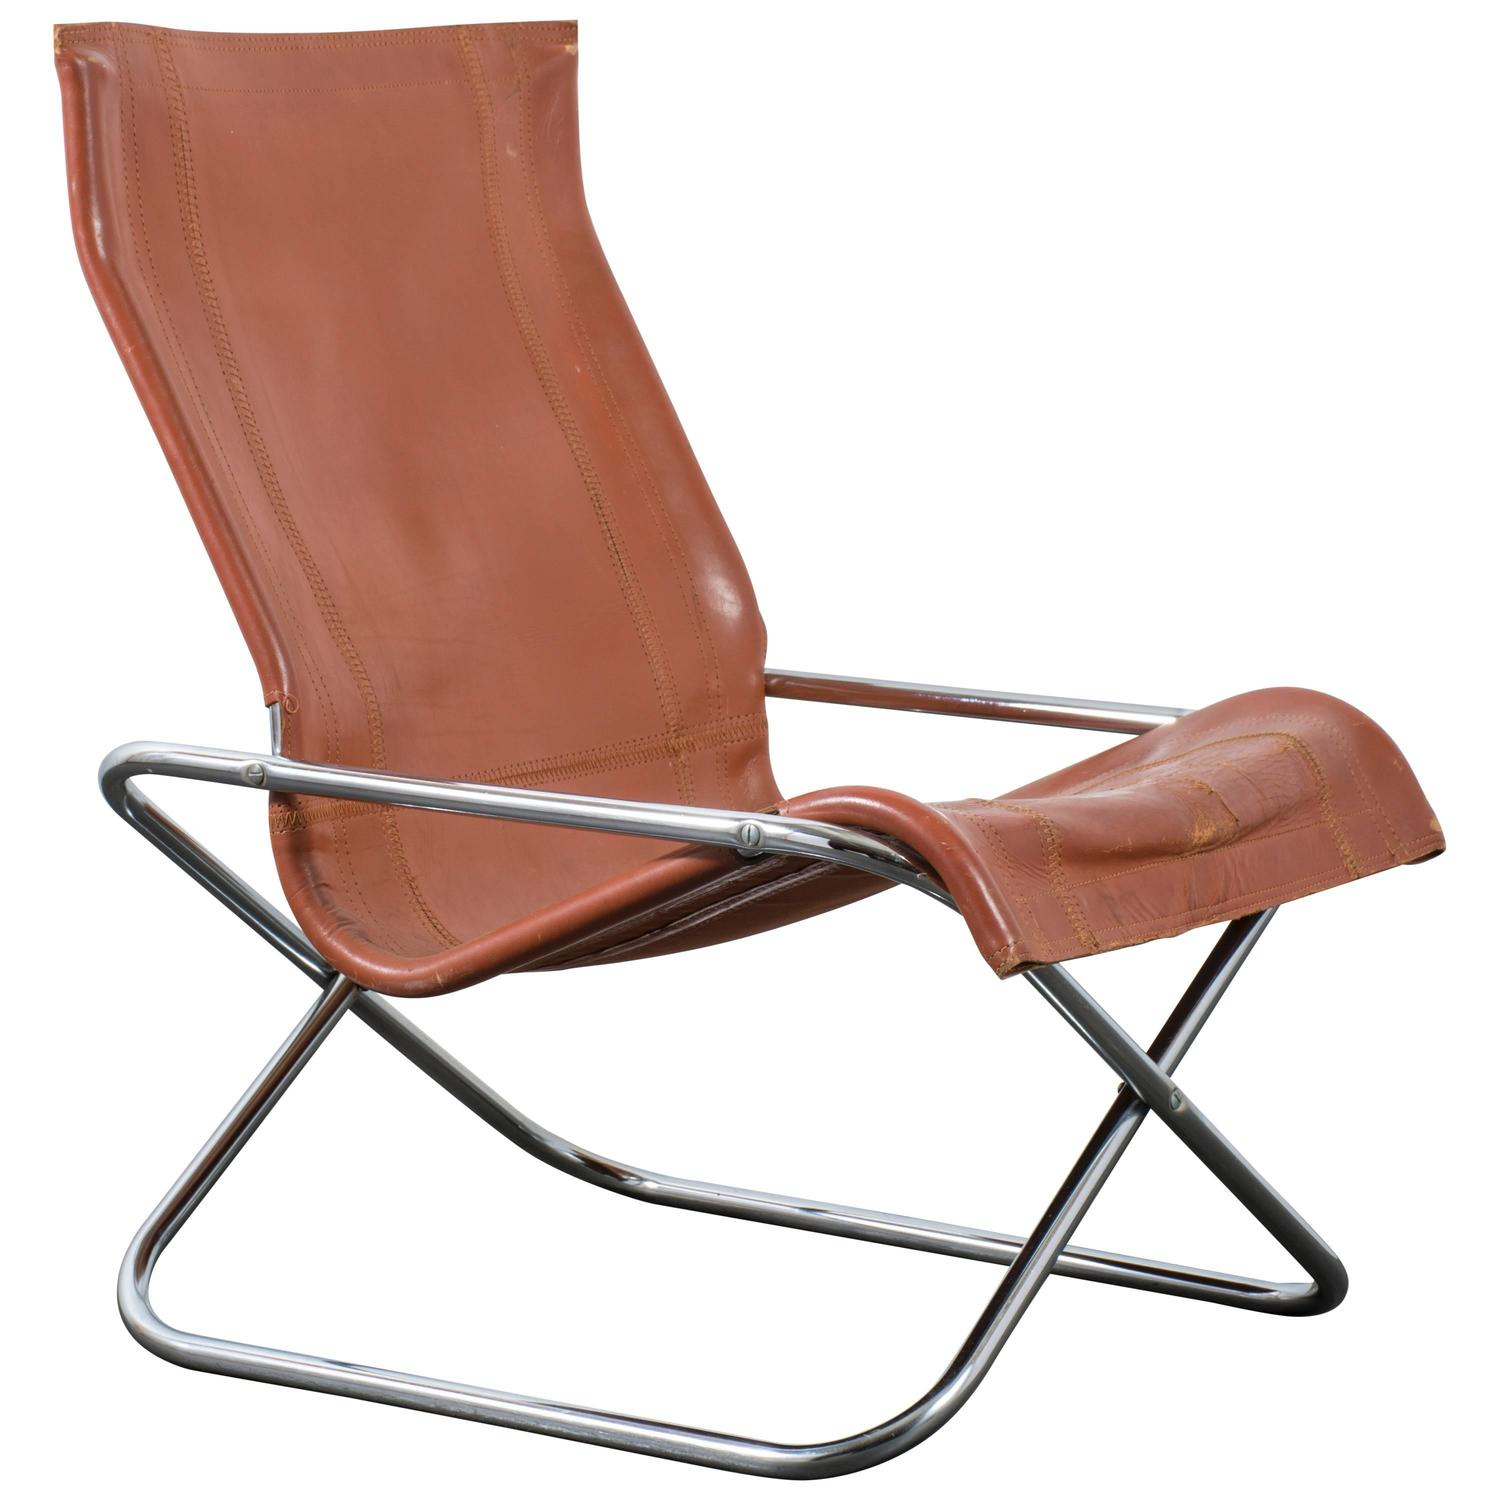 folding z chair diy upholstery vintage mid century 39x 39 by uchida at 1stdibs